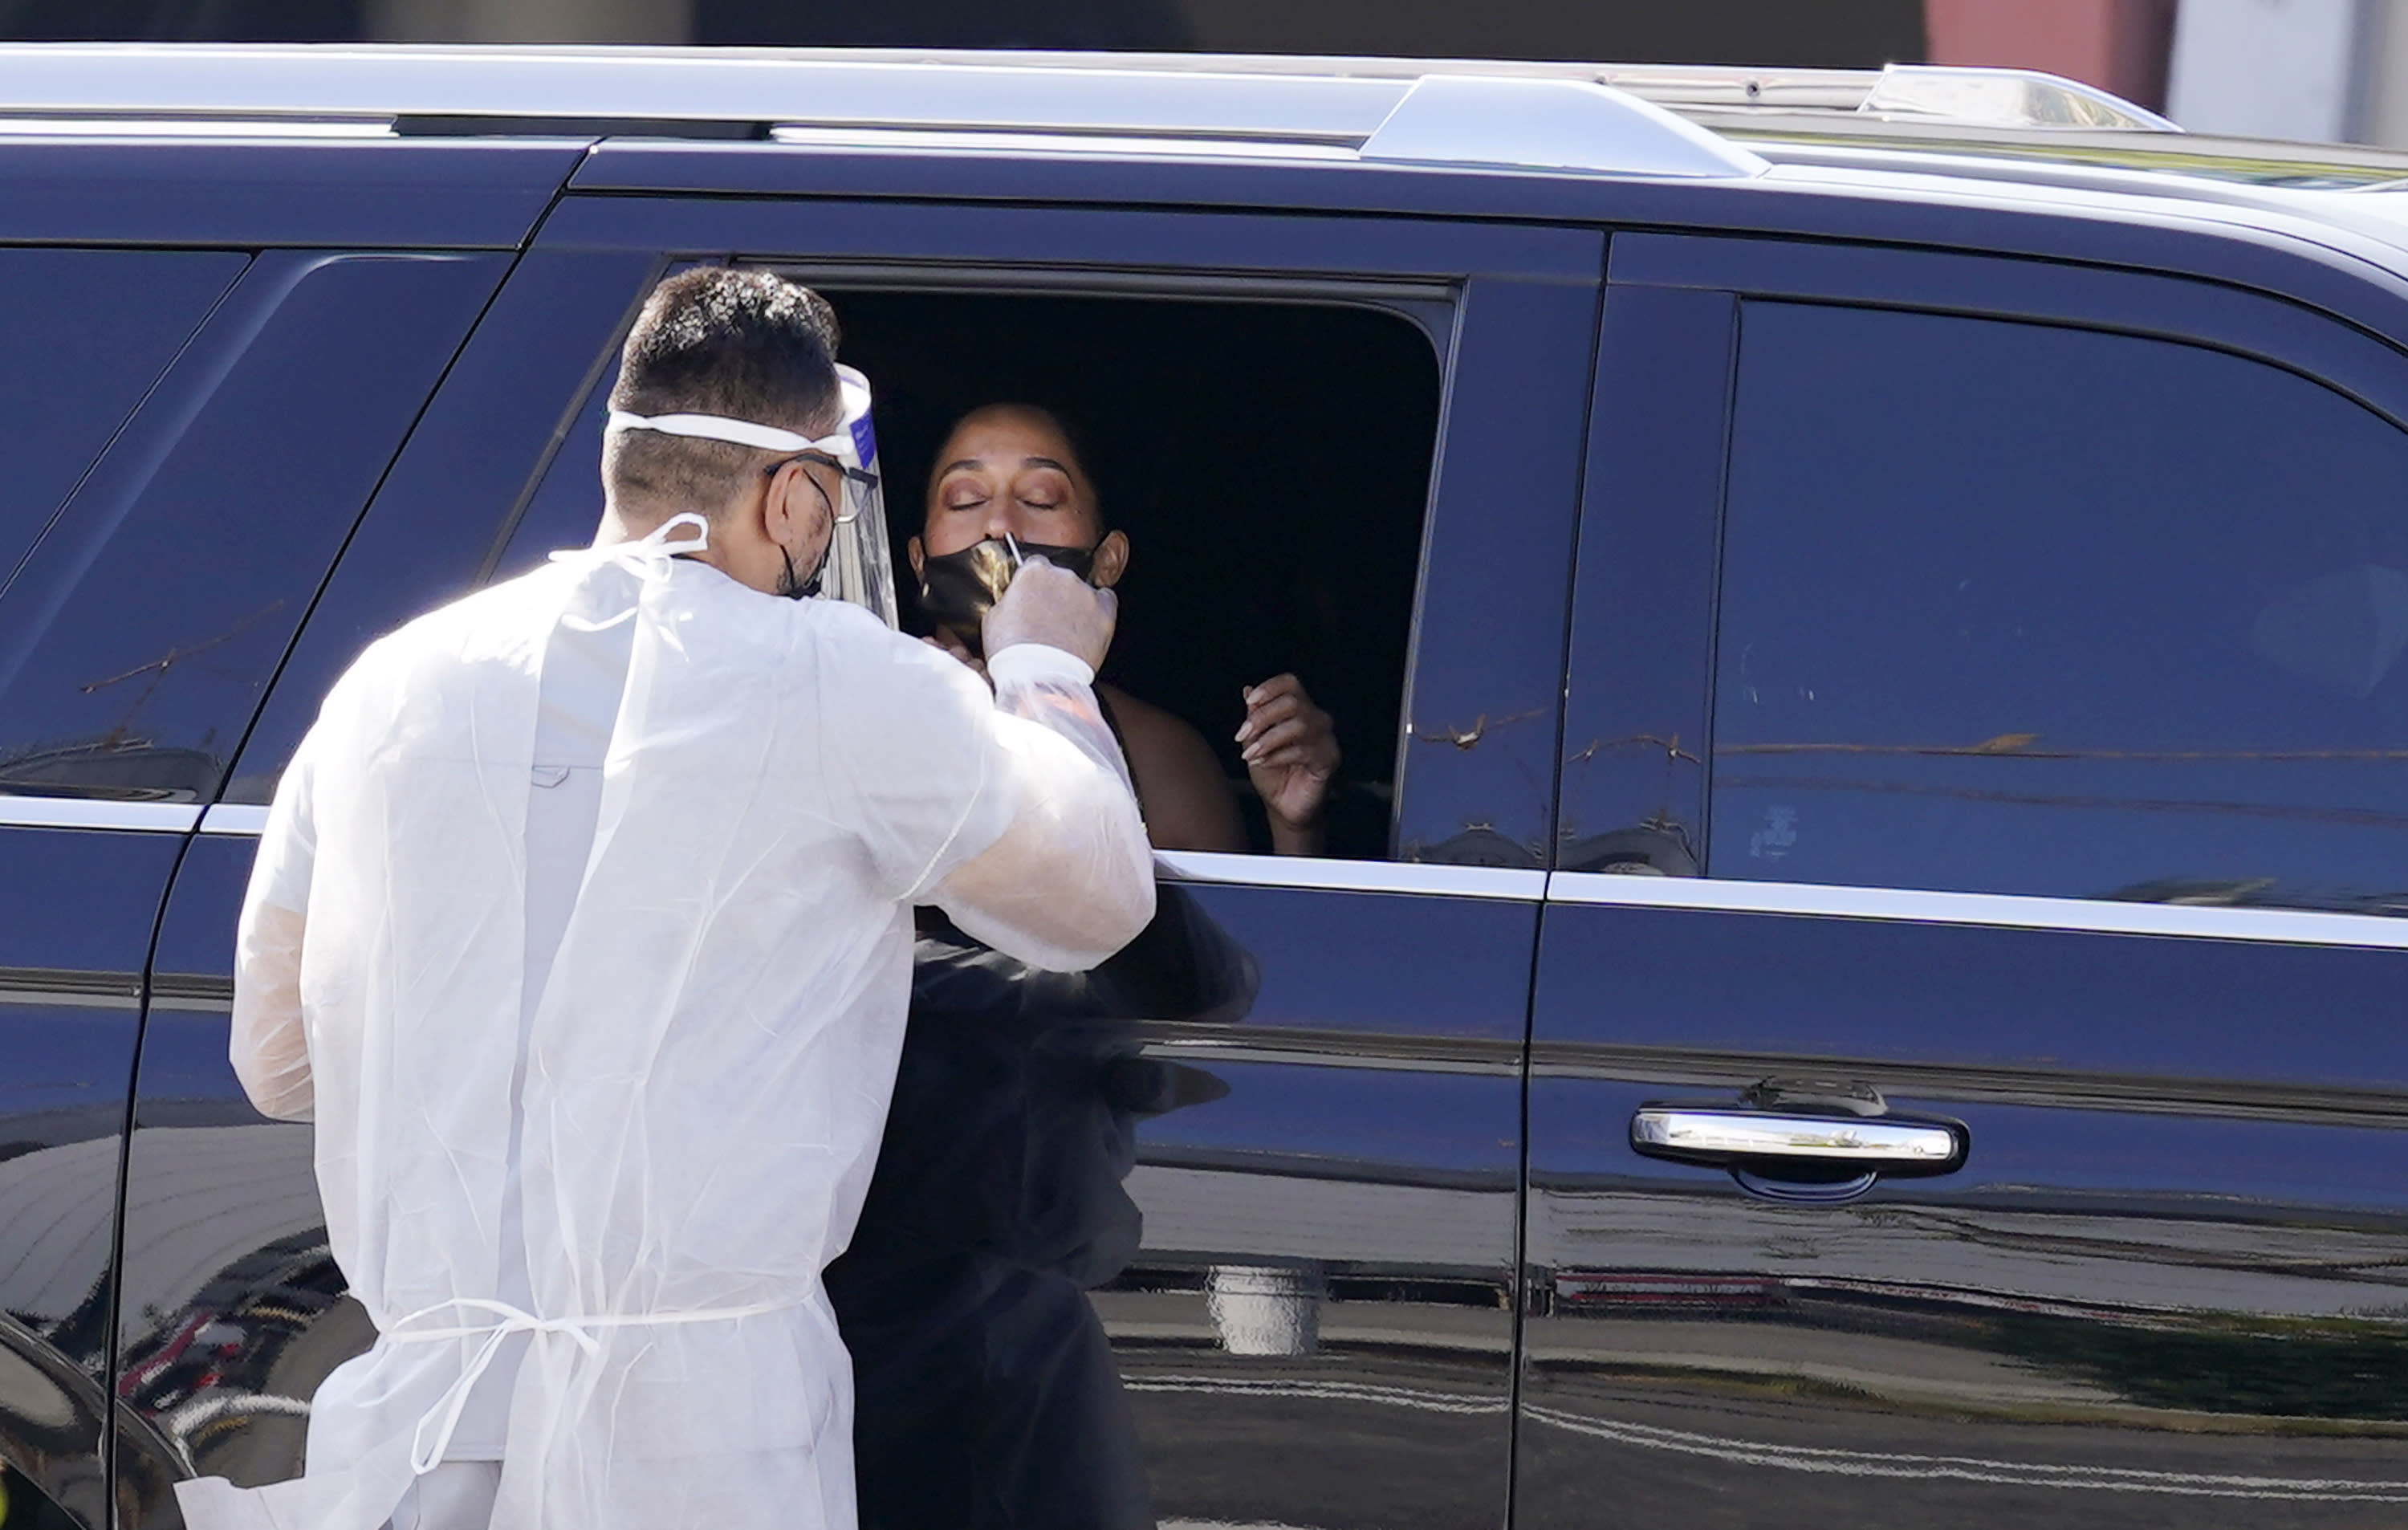 Actress Tracee Ellis Ross gets a coronavirus test as she arrives for the 72nd Primetime Emmy Awards at Staples Center, Sunday, Sept. 20, 2020, in Los Angeles. (AP Photo/Chris Pizzello)